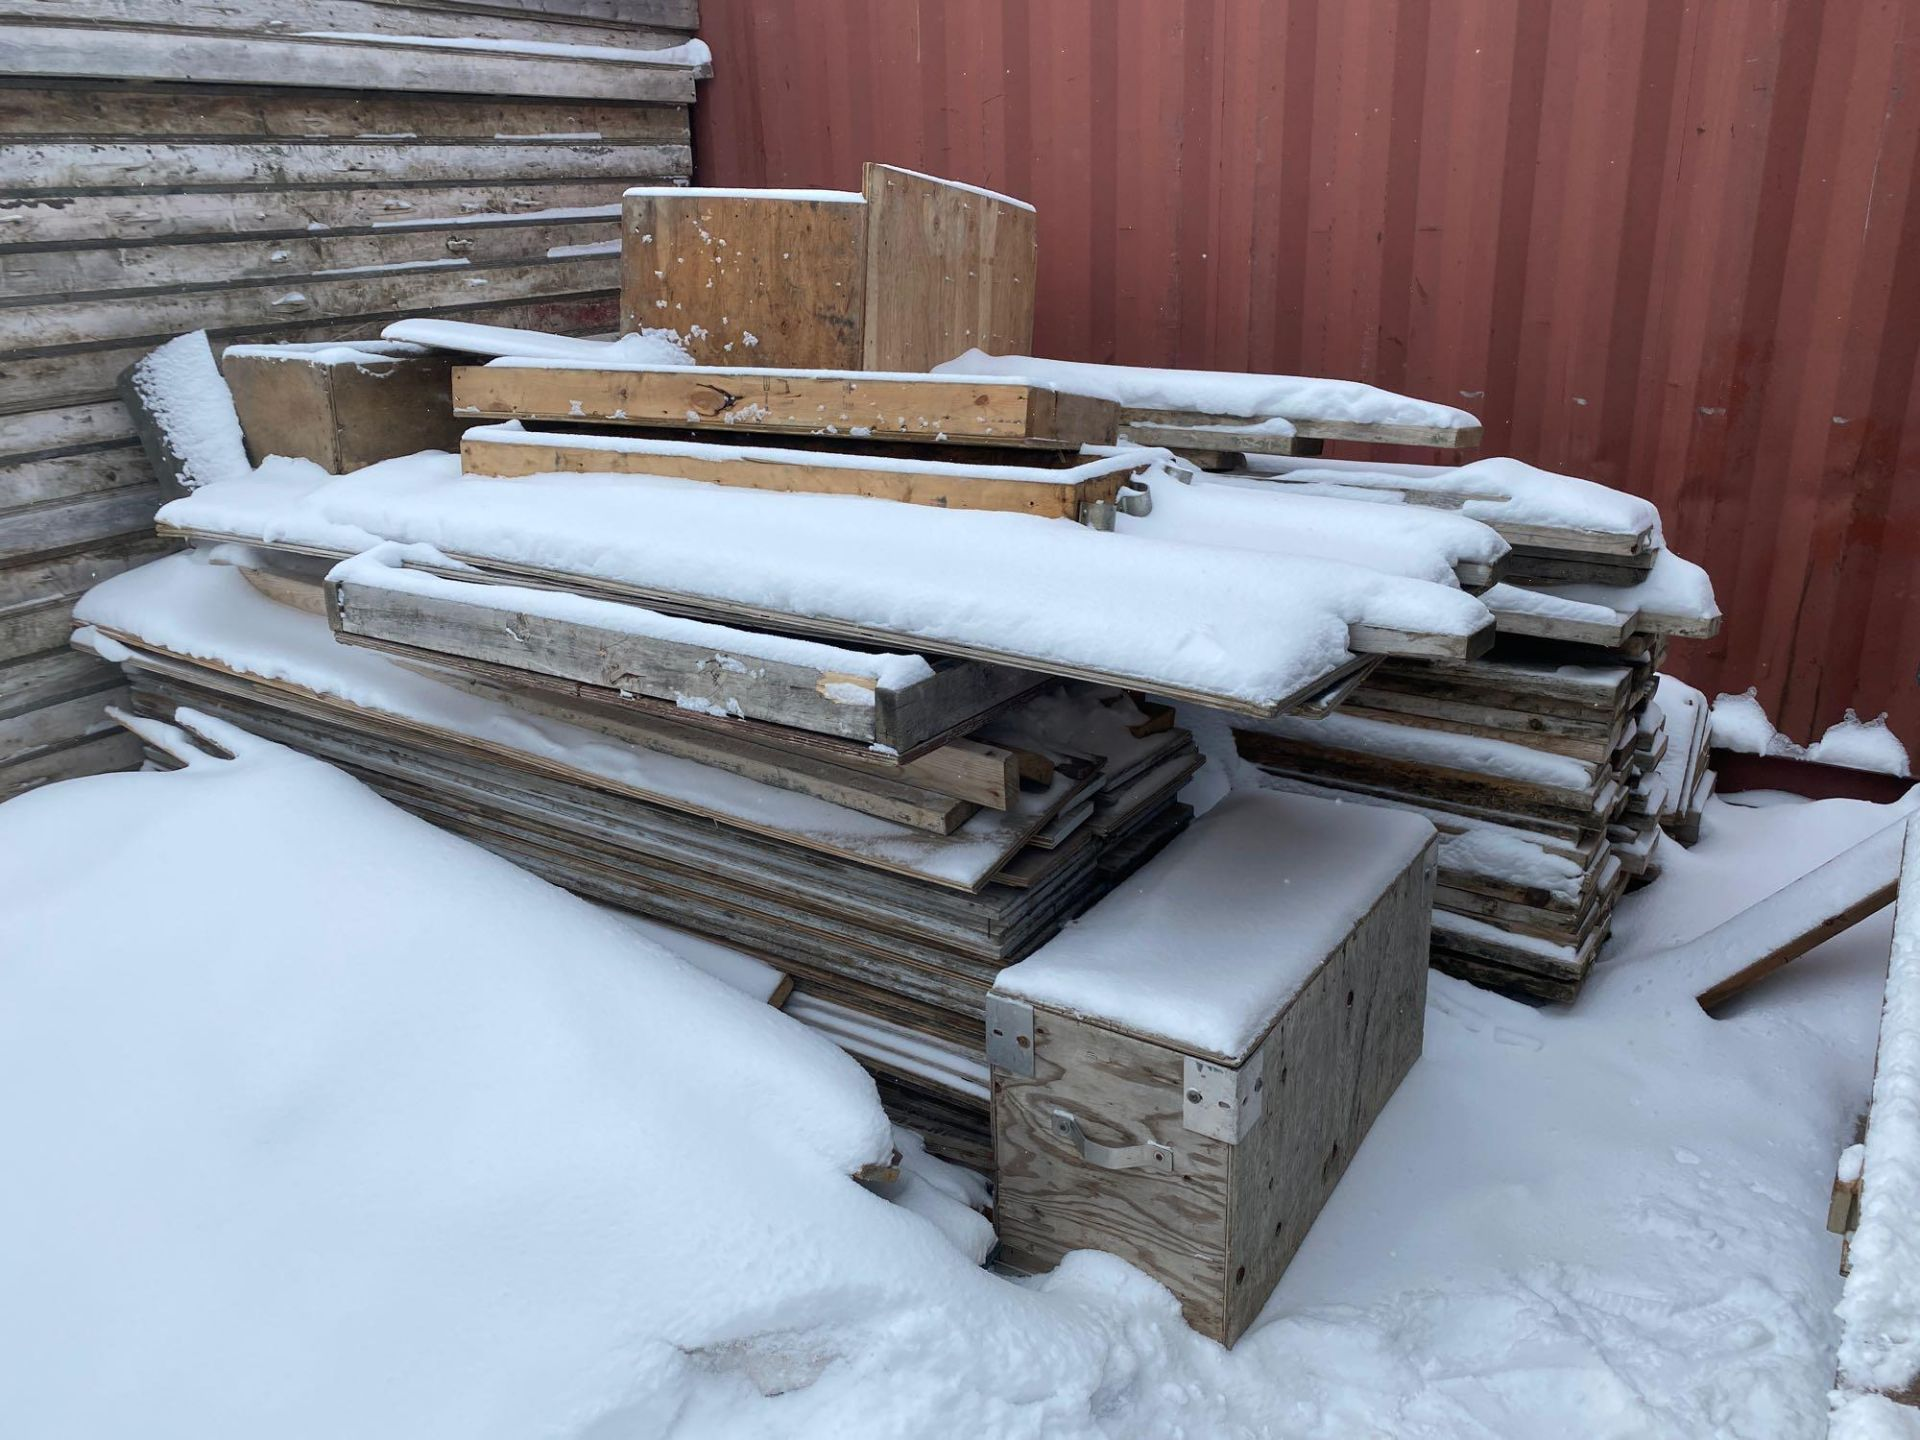 Lot of Asst. Forming Lumber - Image 3 of 8